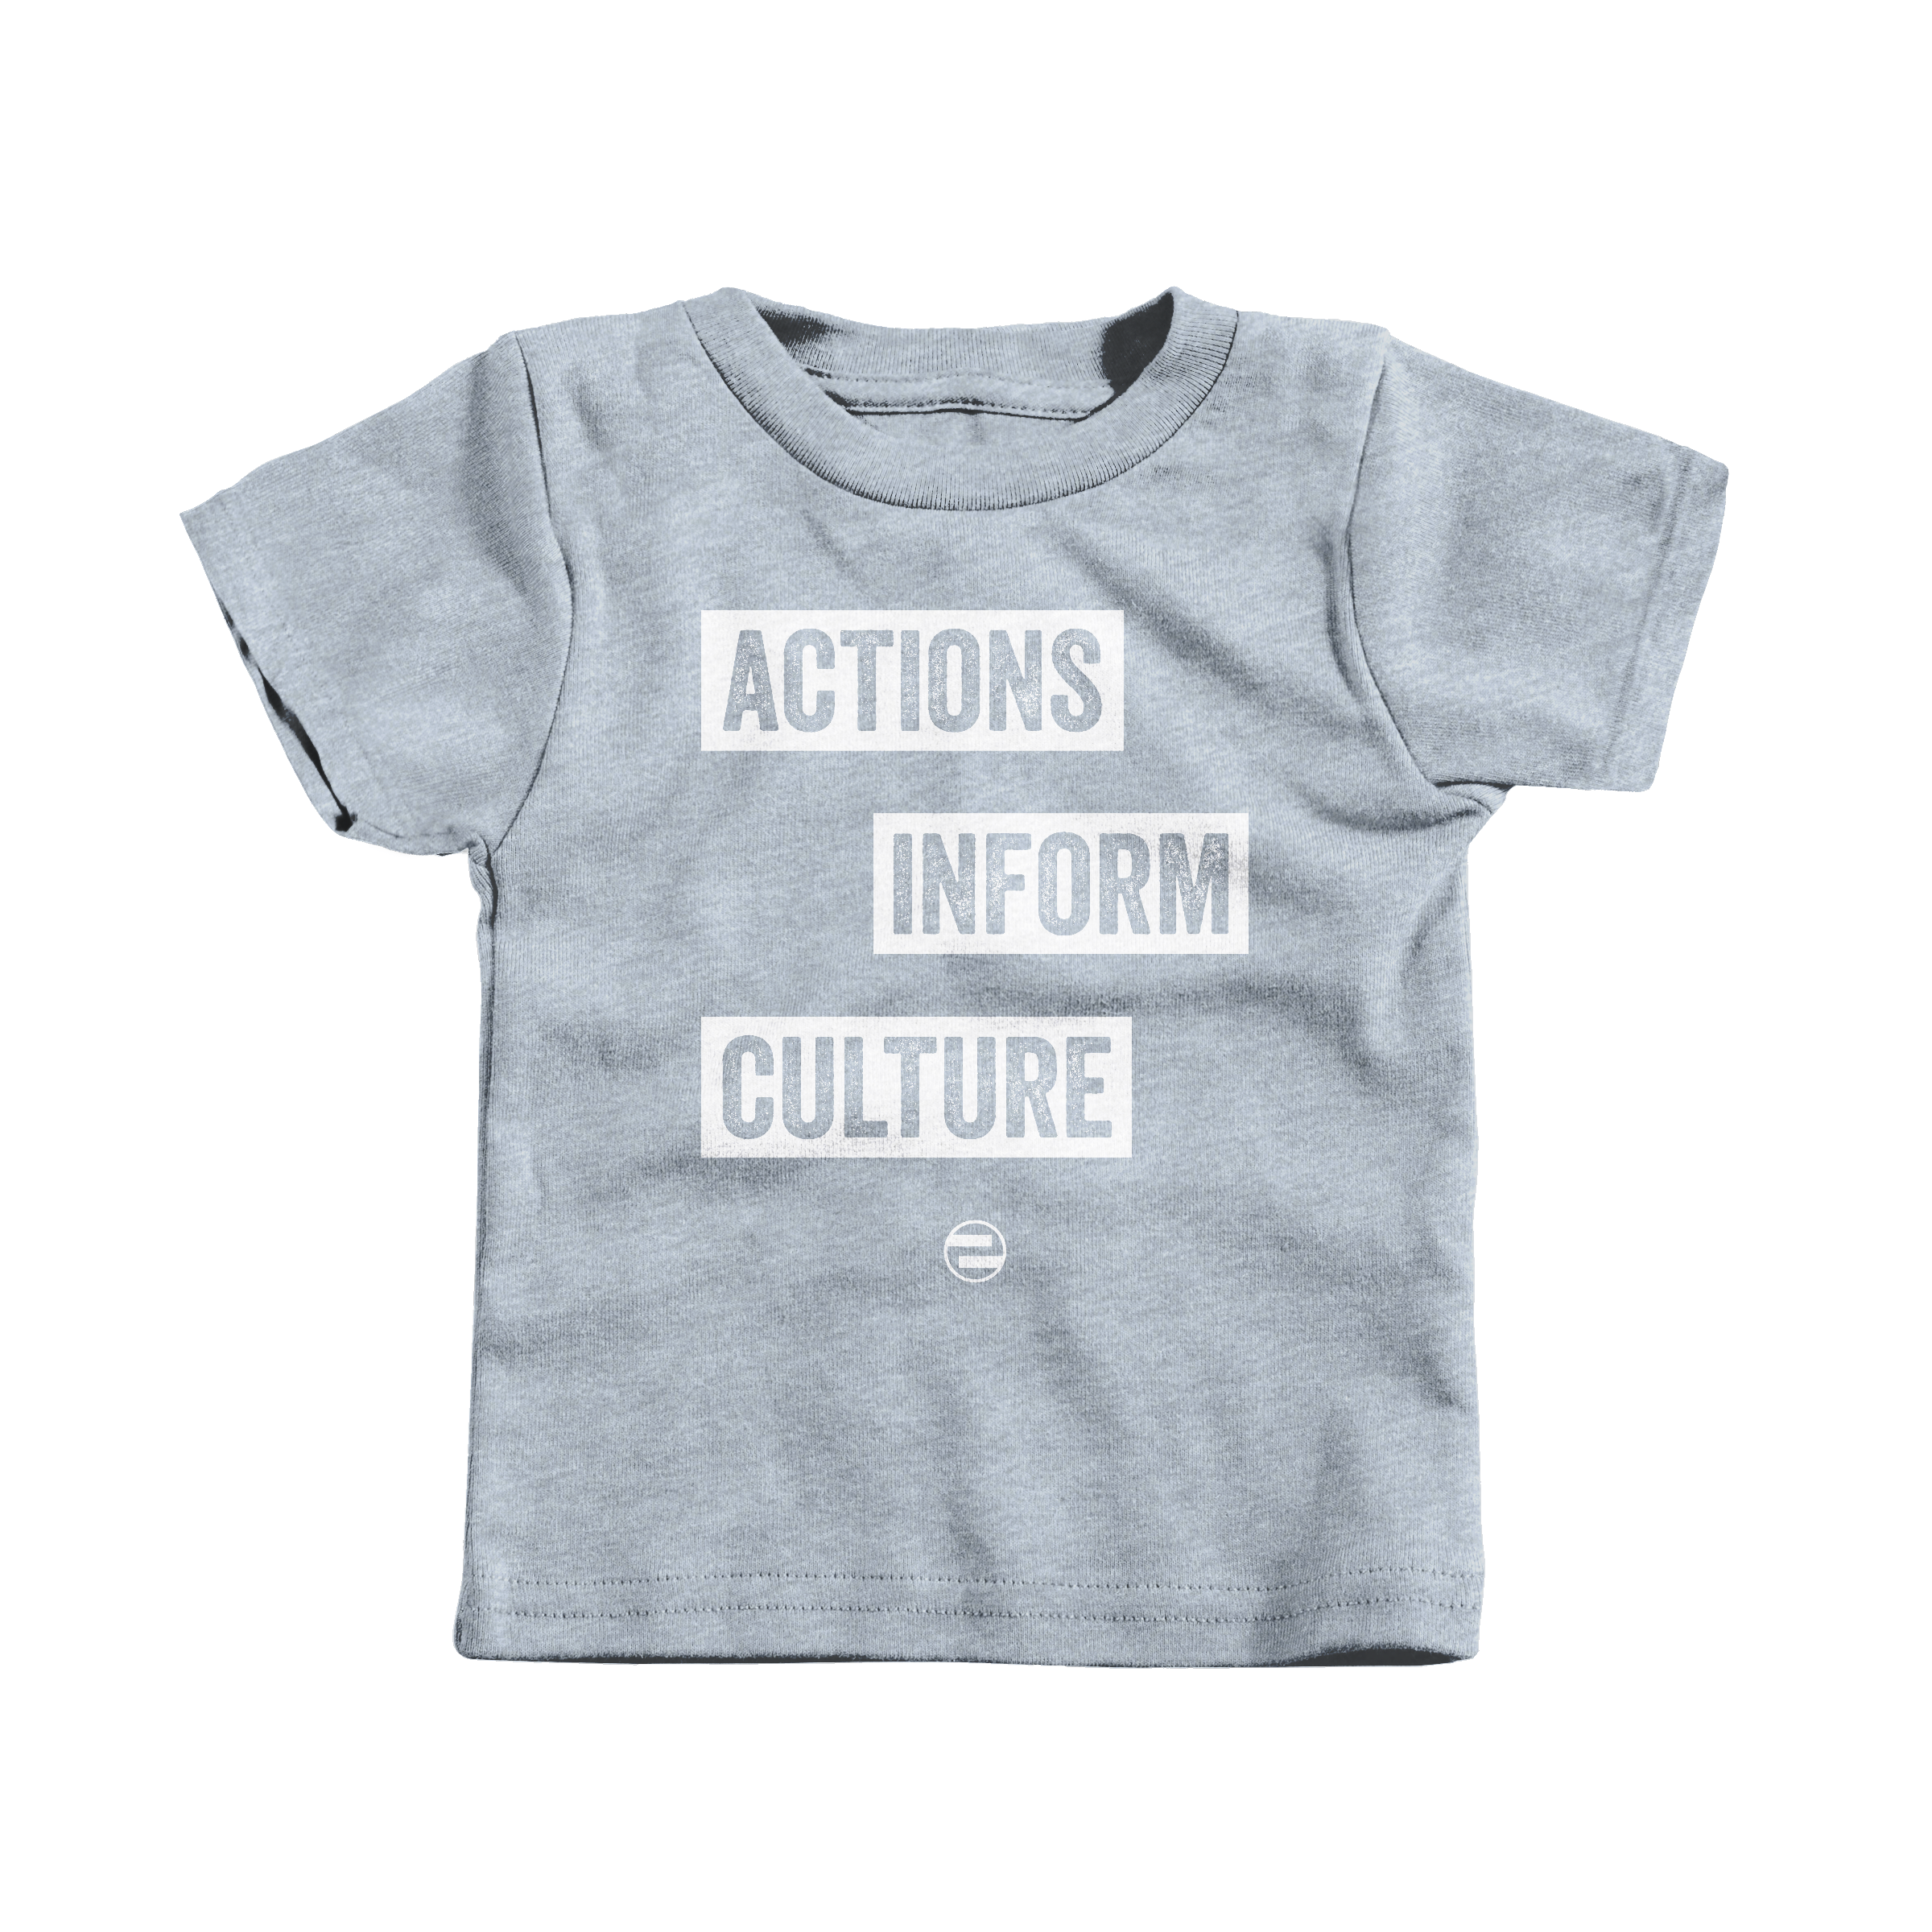 "GenEquality ""Actions Inform Culture"" Kids Tee & Onesie Heather Grey (T-Shirt)"